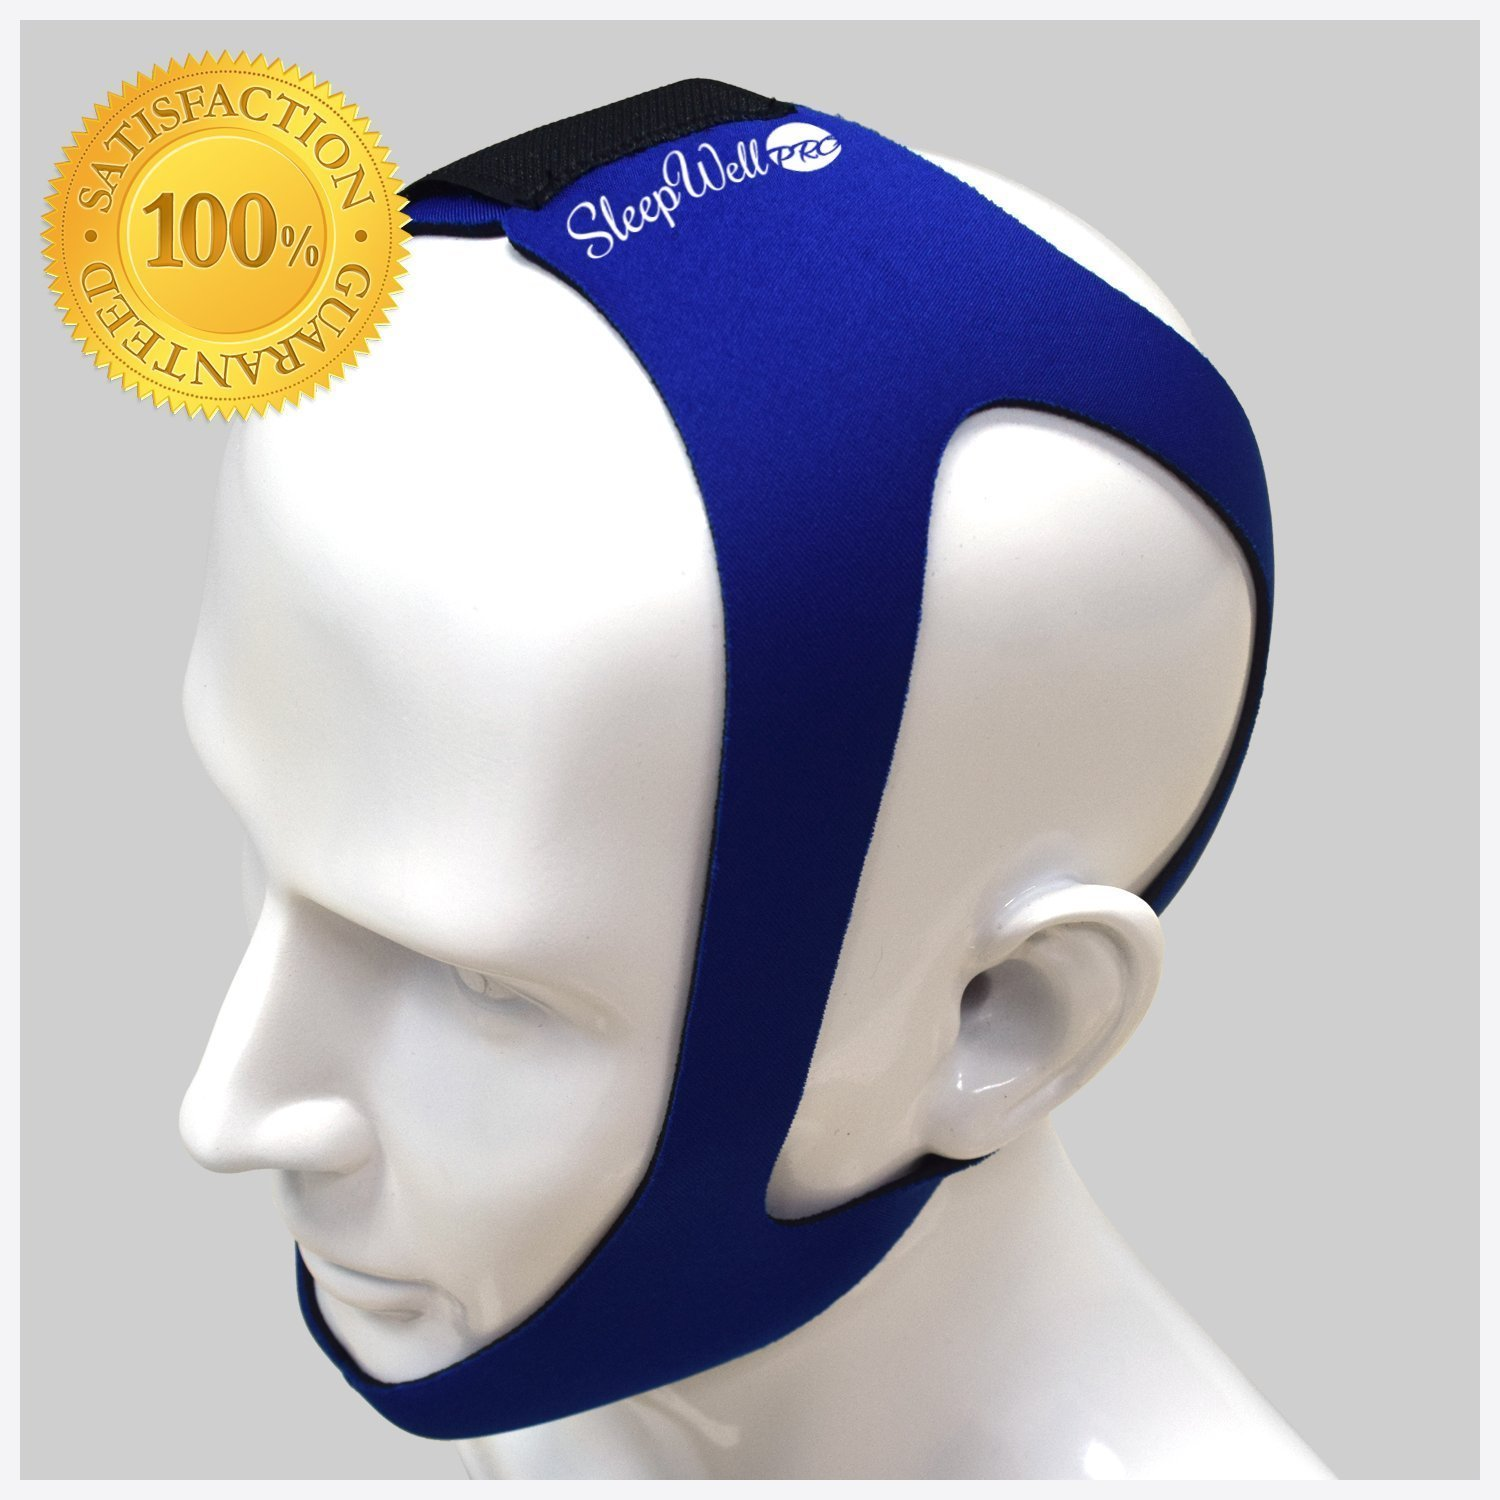 SleepWell Pro Adjustable Stop Snoring Chin Strap Medium